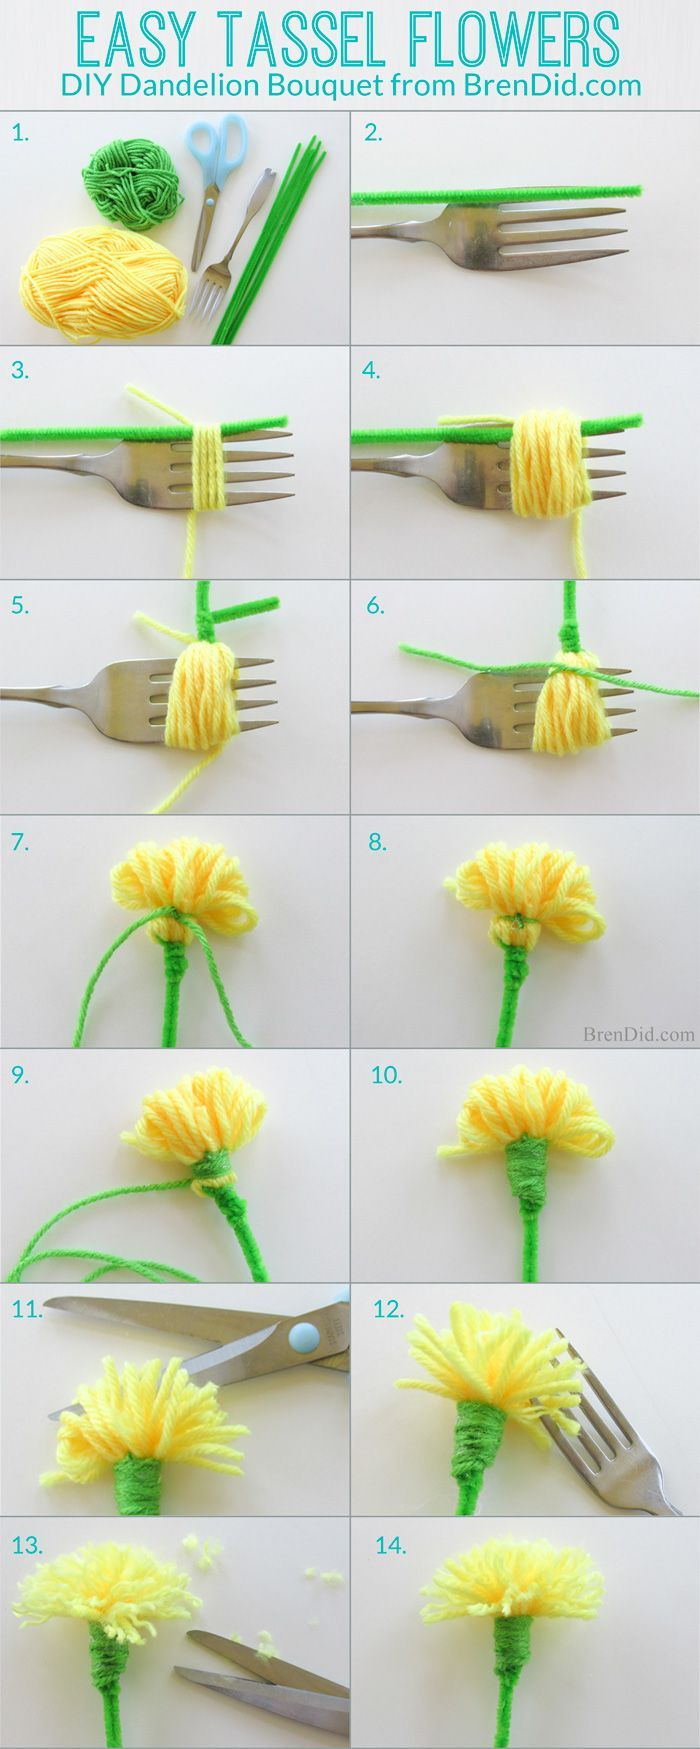 I am going to make these DIY flowers out of my yarn scraps.